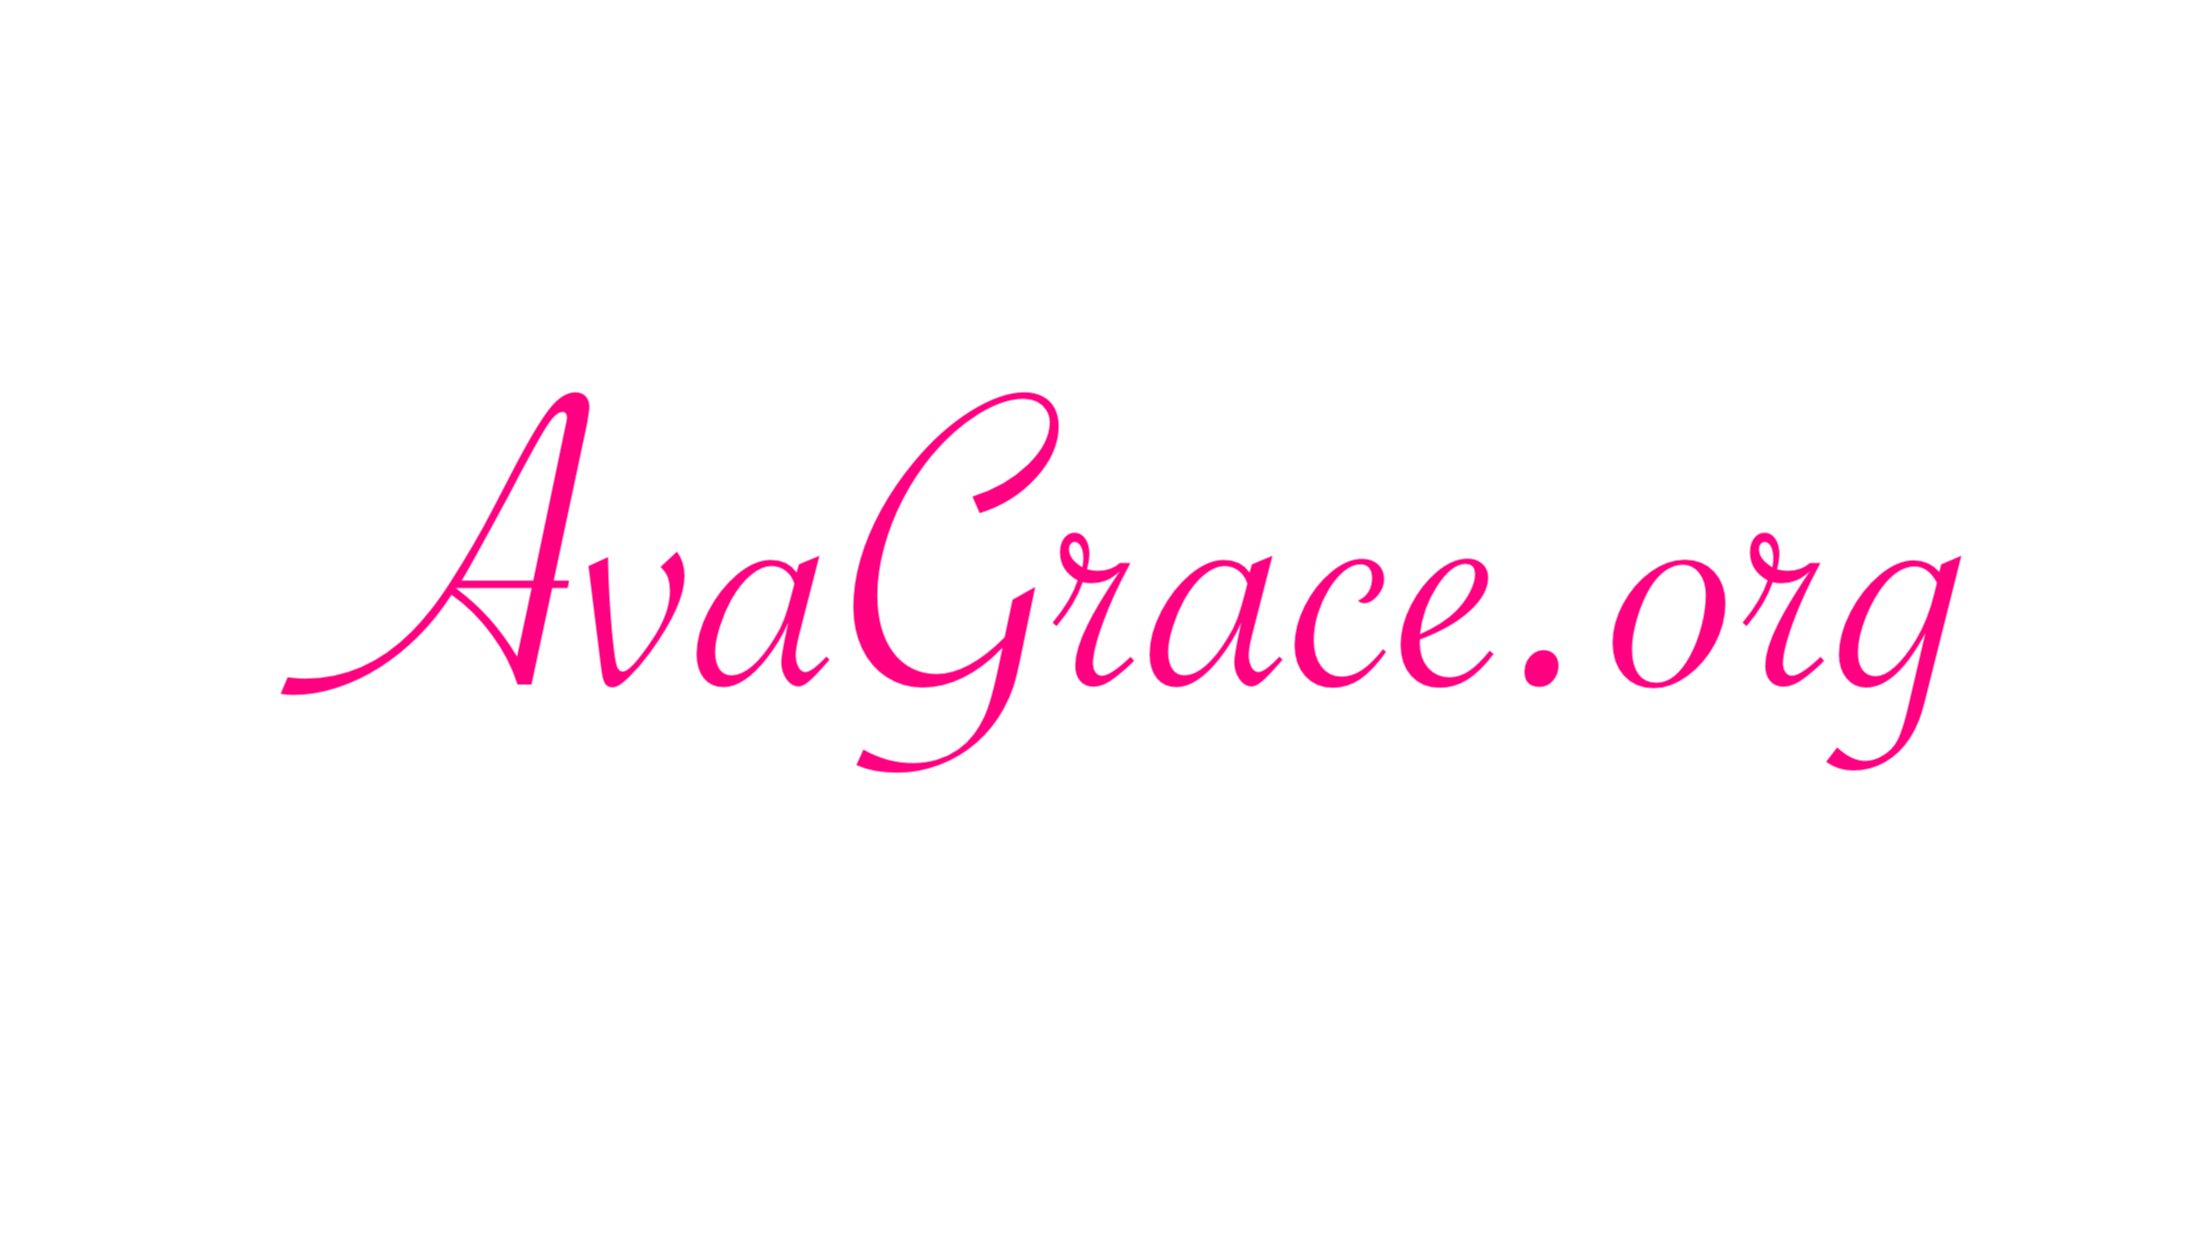 AvaGrace.org